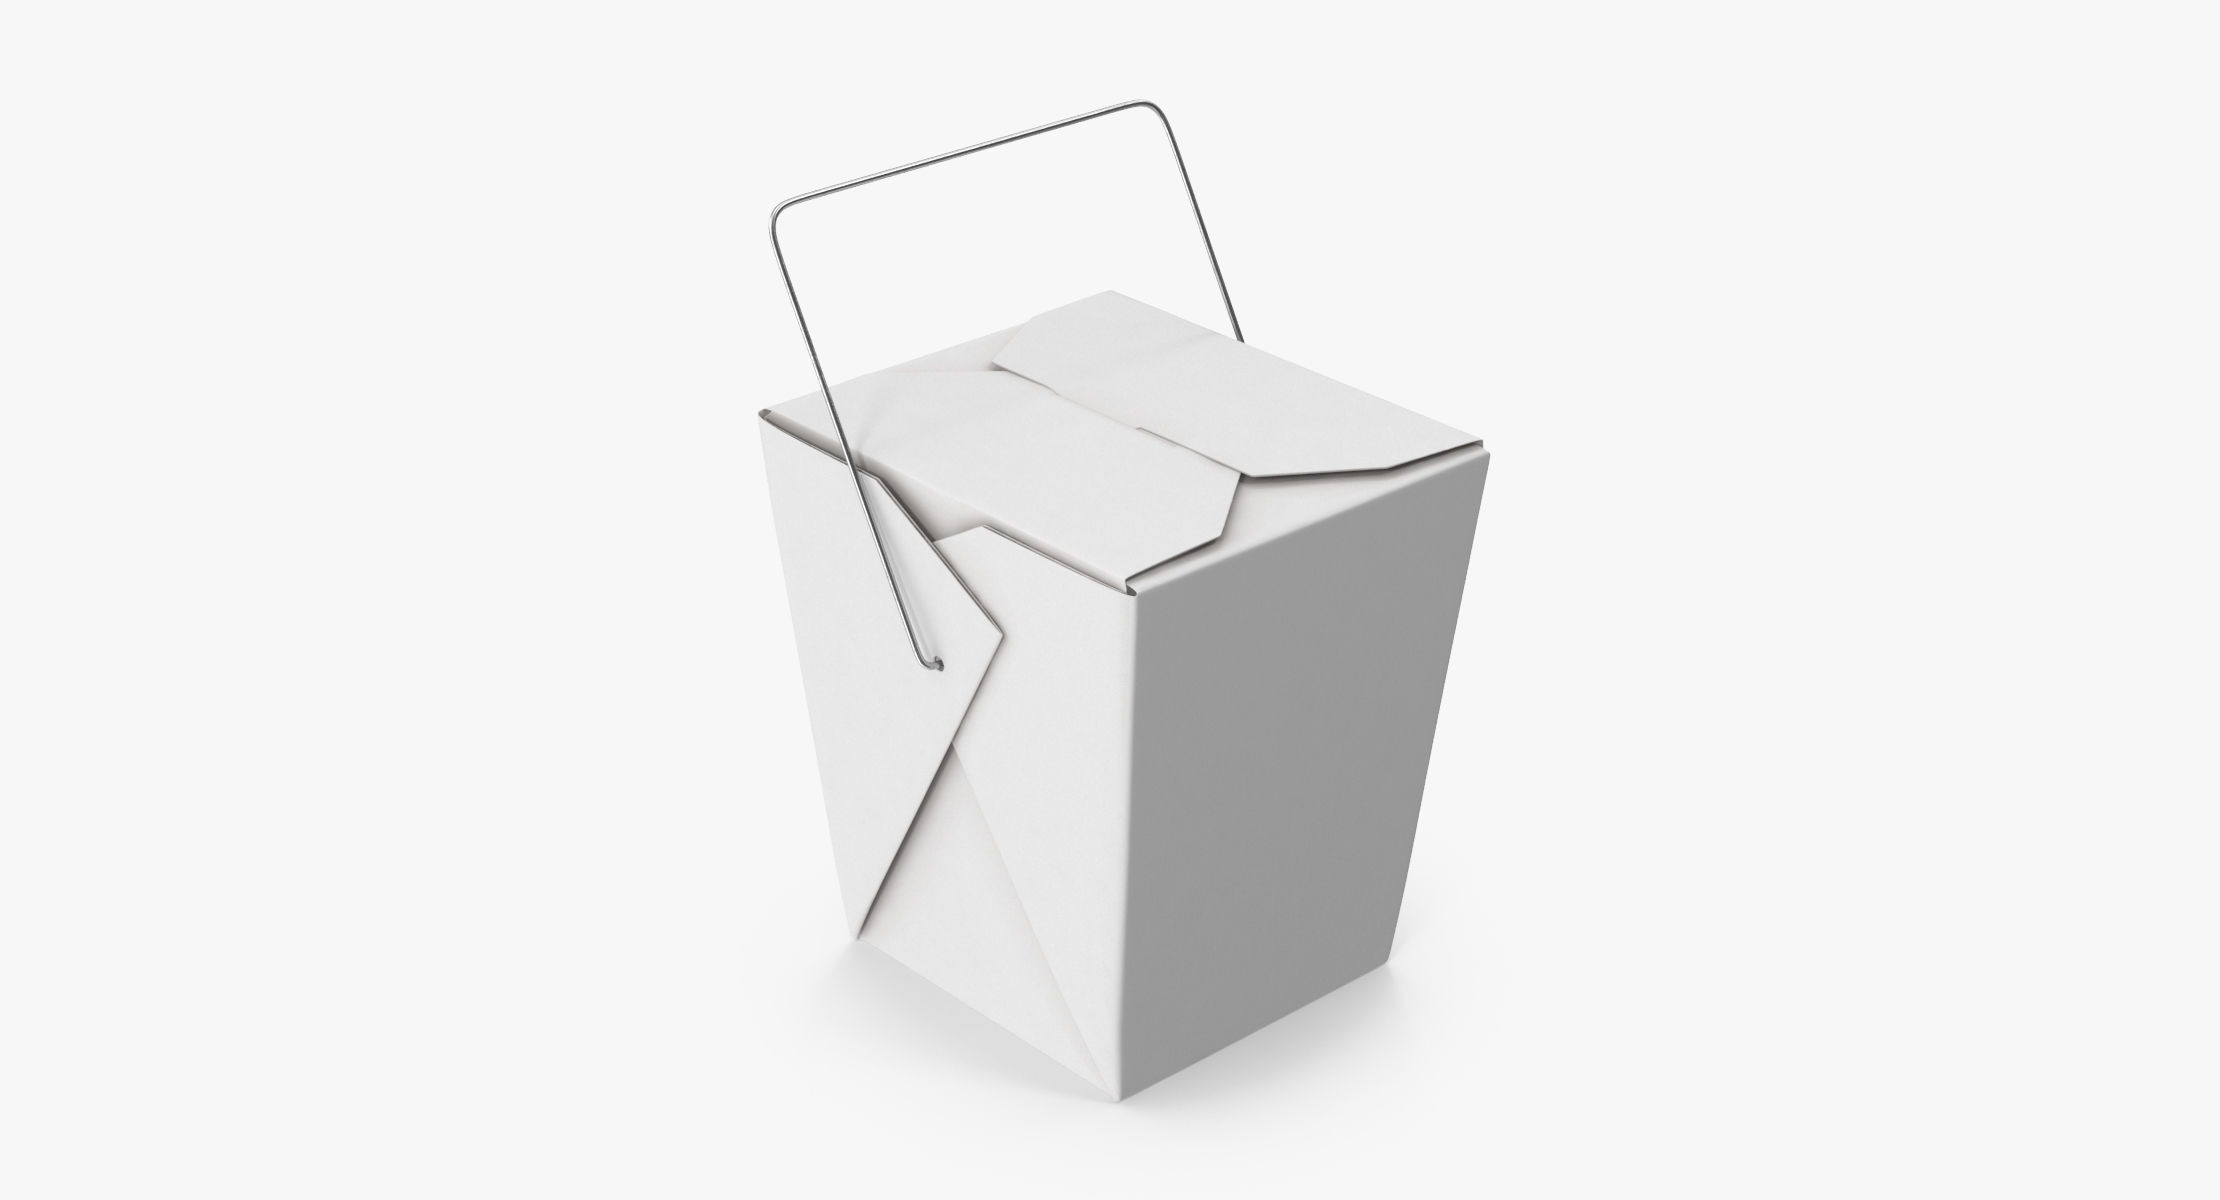 Chinese Takeout Box Closed - reel 1